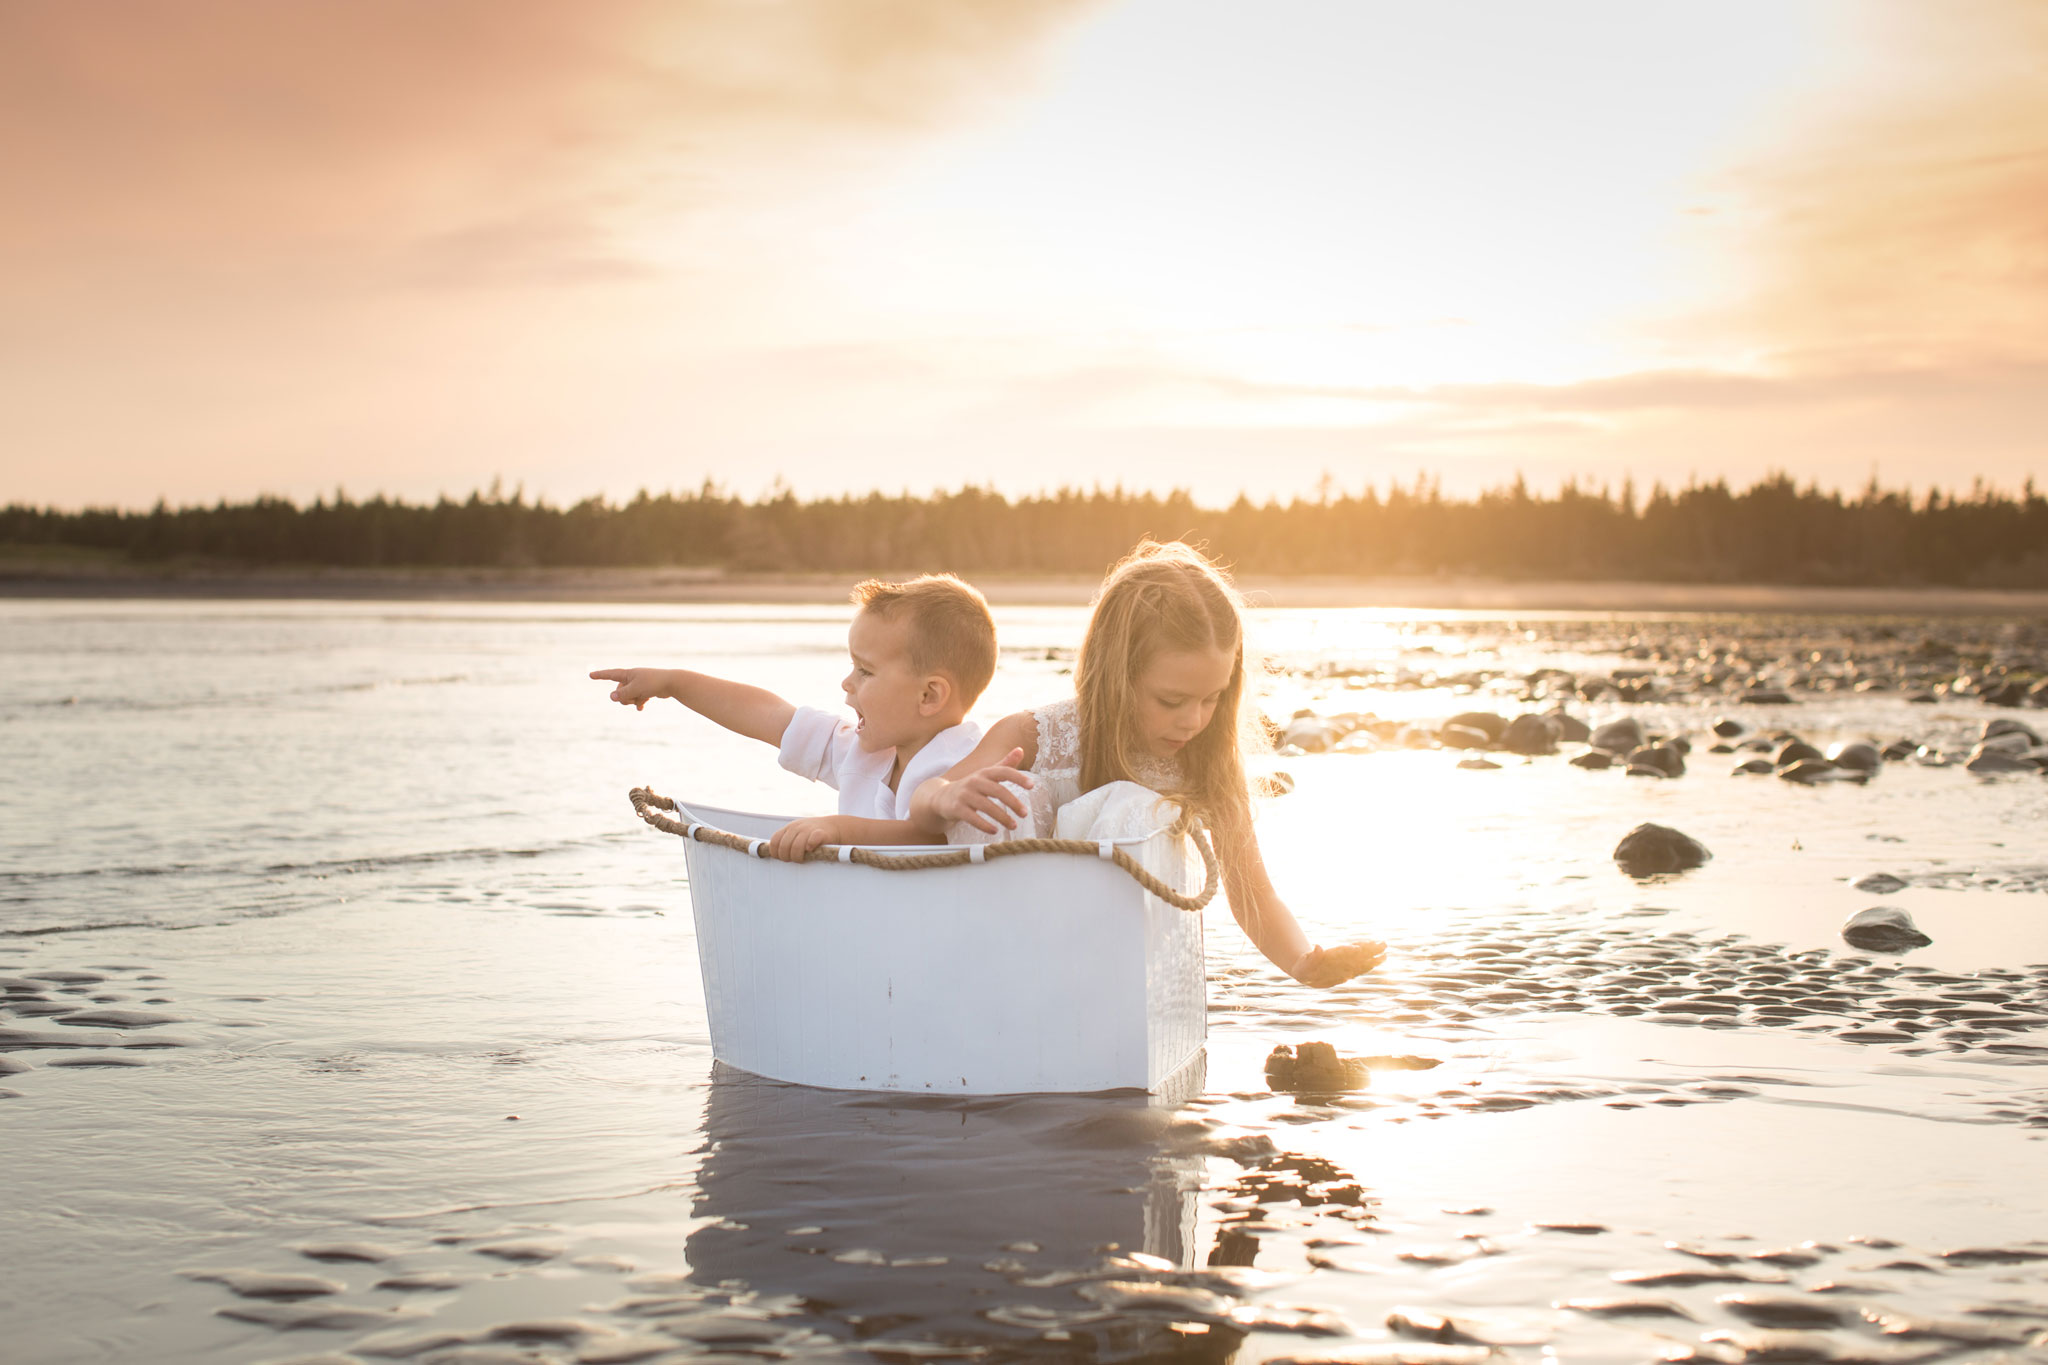 Two children playing in toy boat by the beach